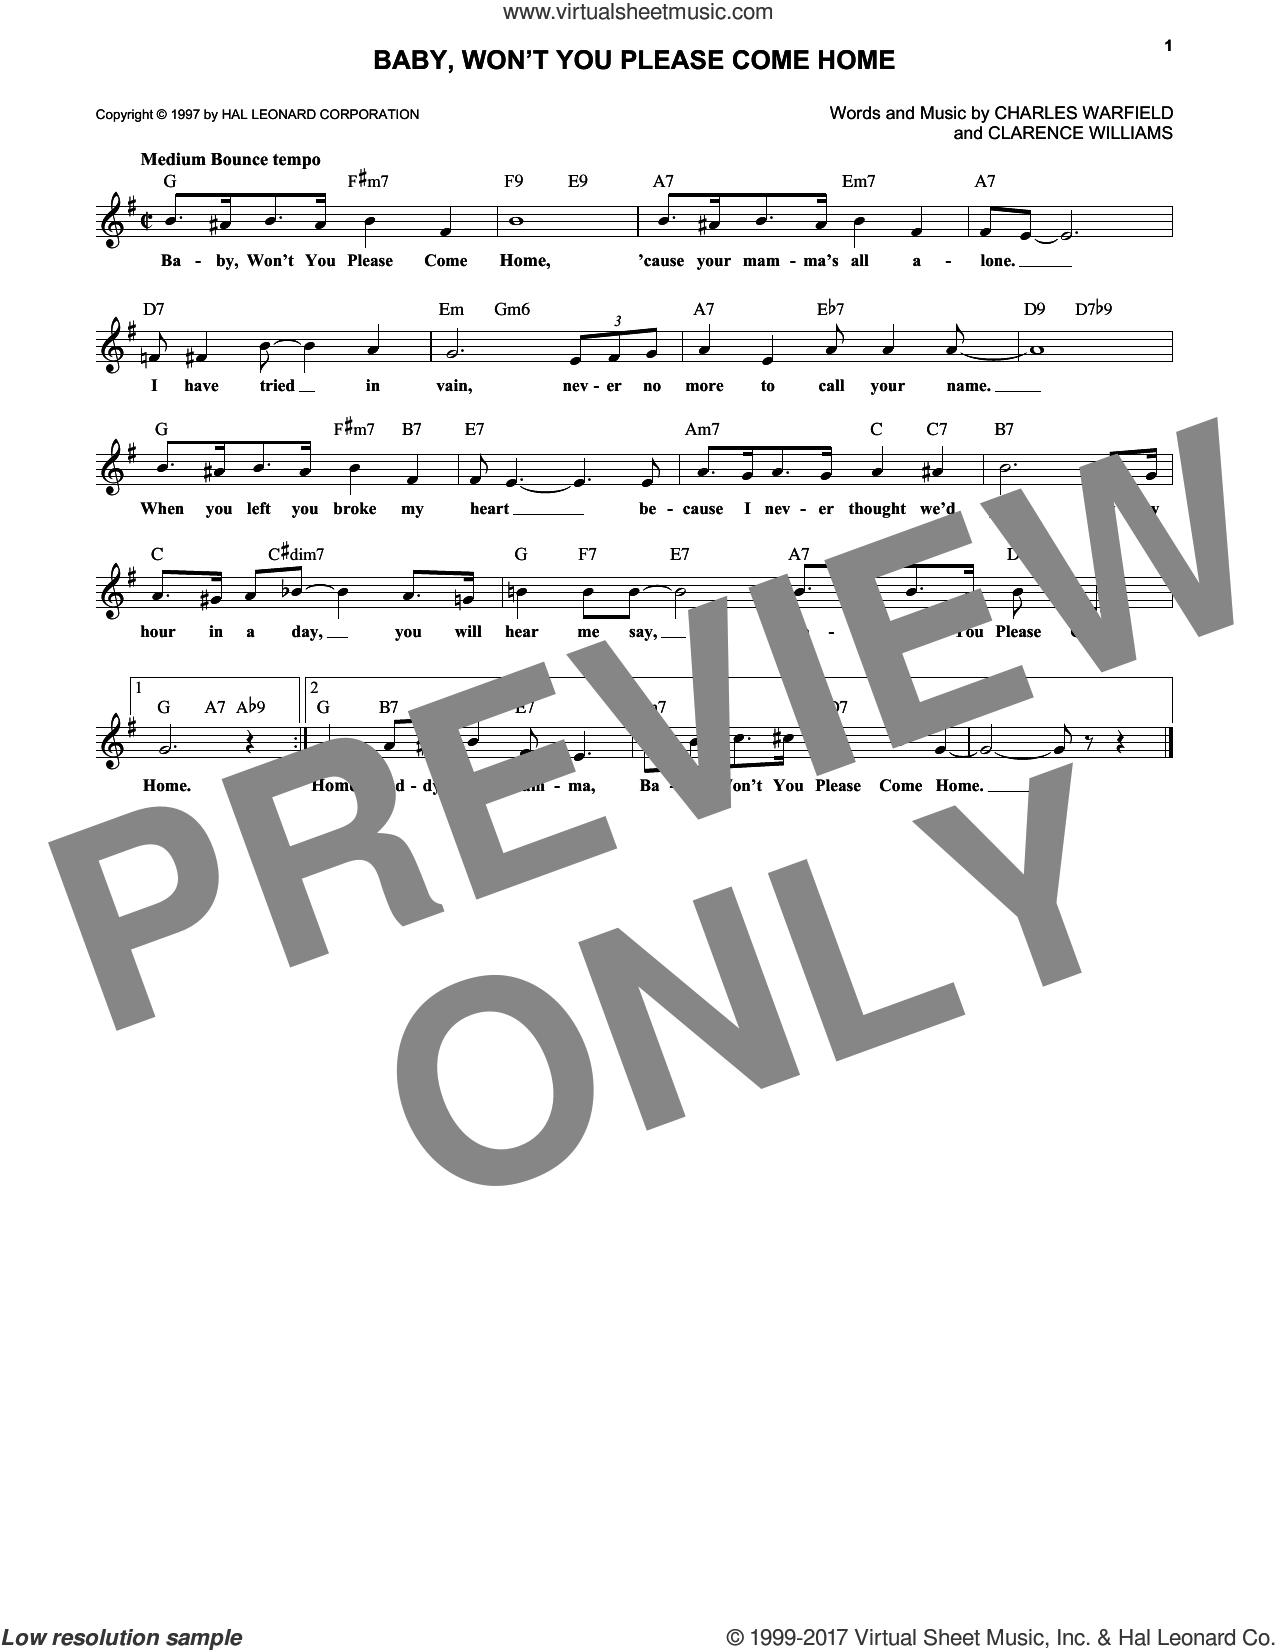 Baby, Won't You Please Come Home sheet music for voice and other instruments (fake book) by Clarence Williams, Bessie Smith and Charles Warfield, intermediate skill level